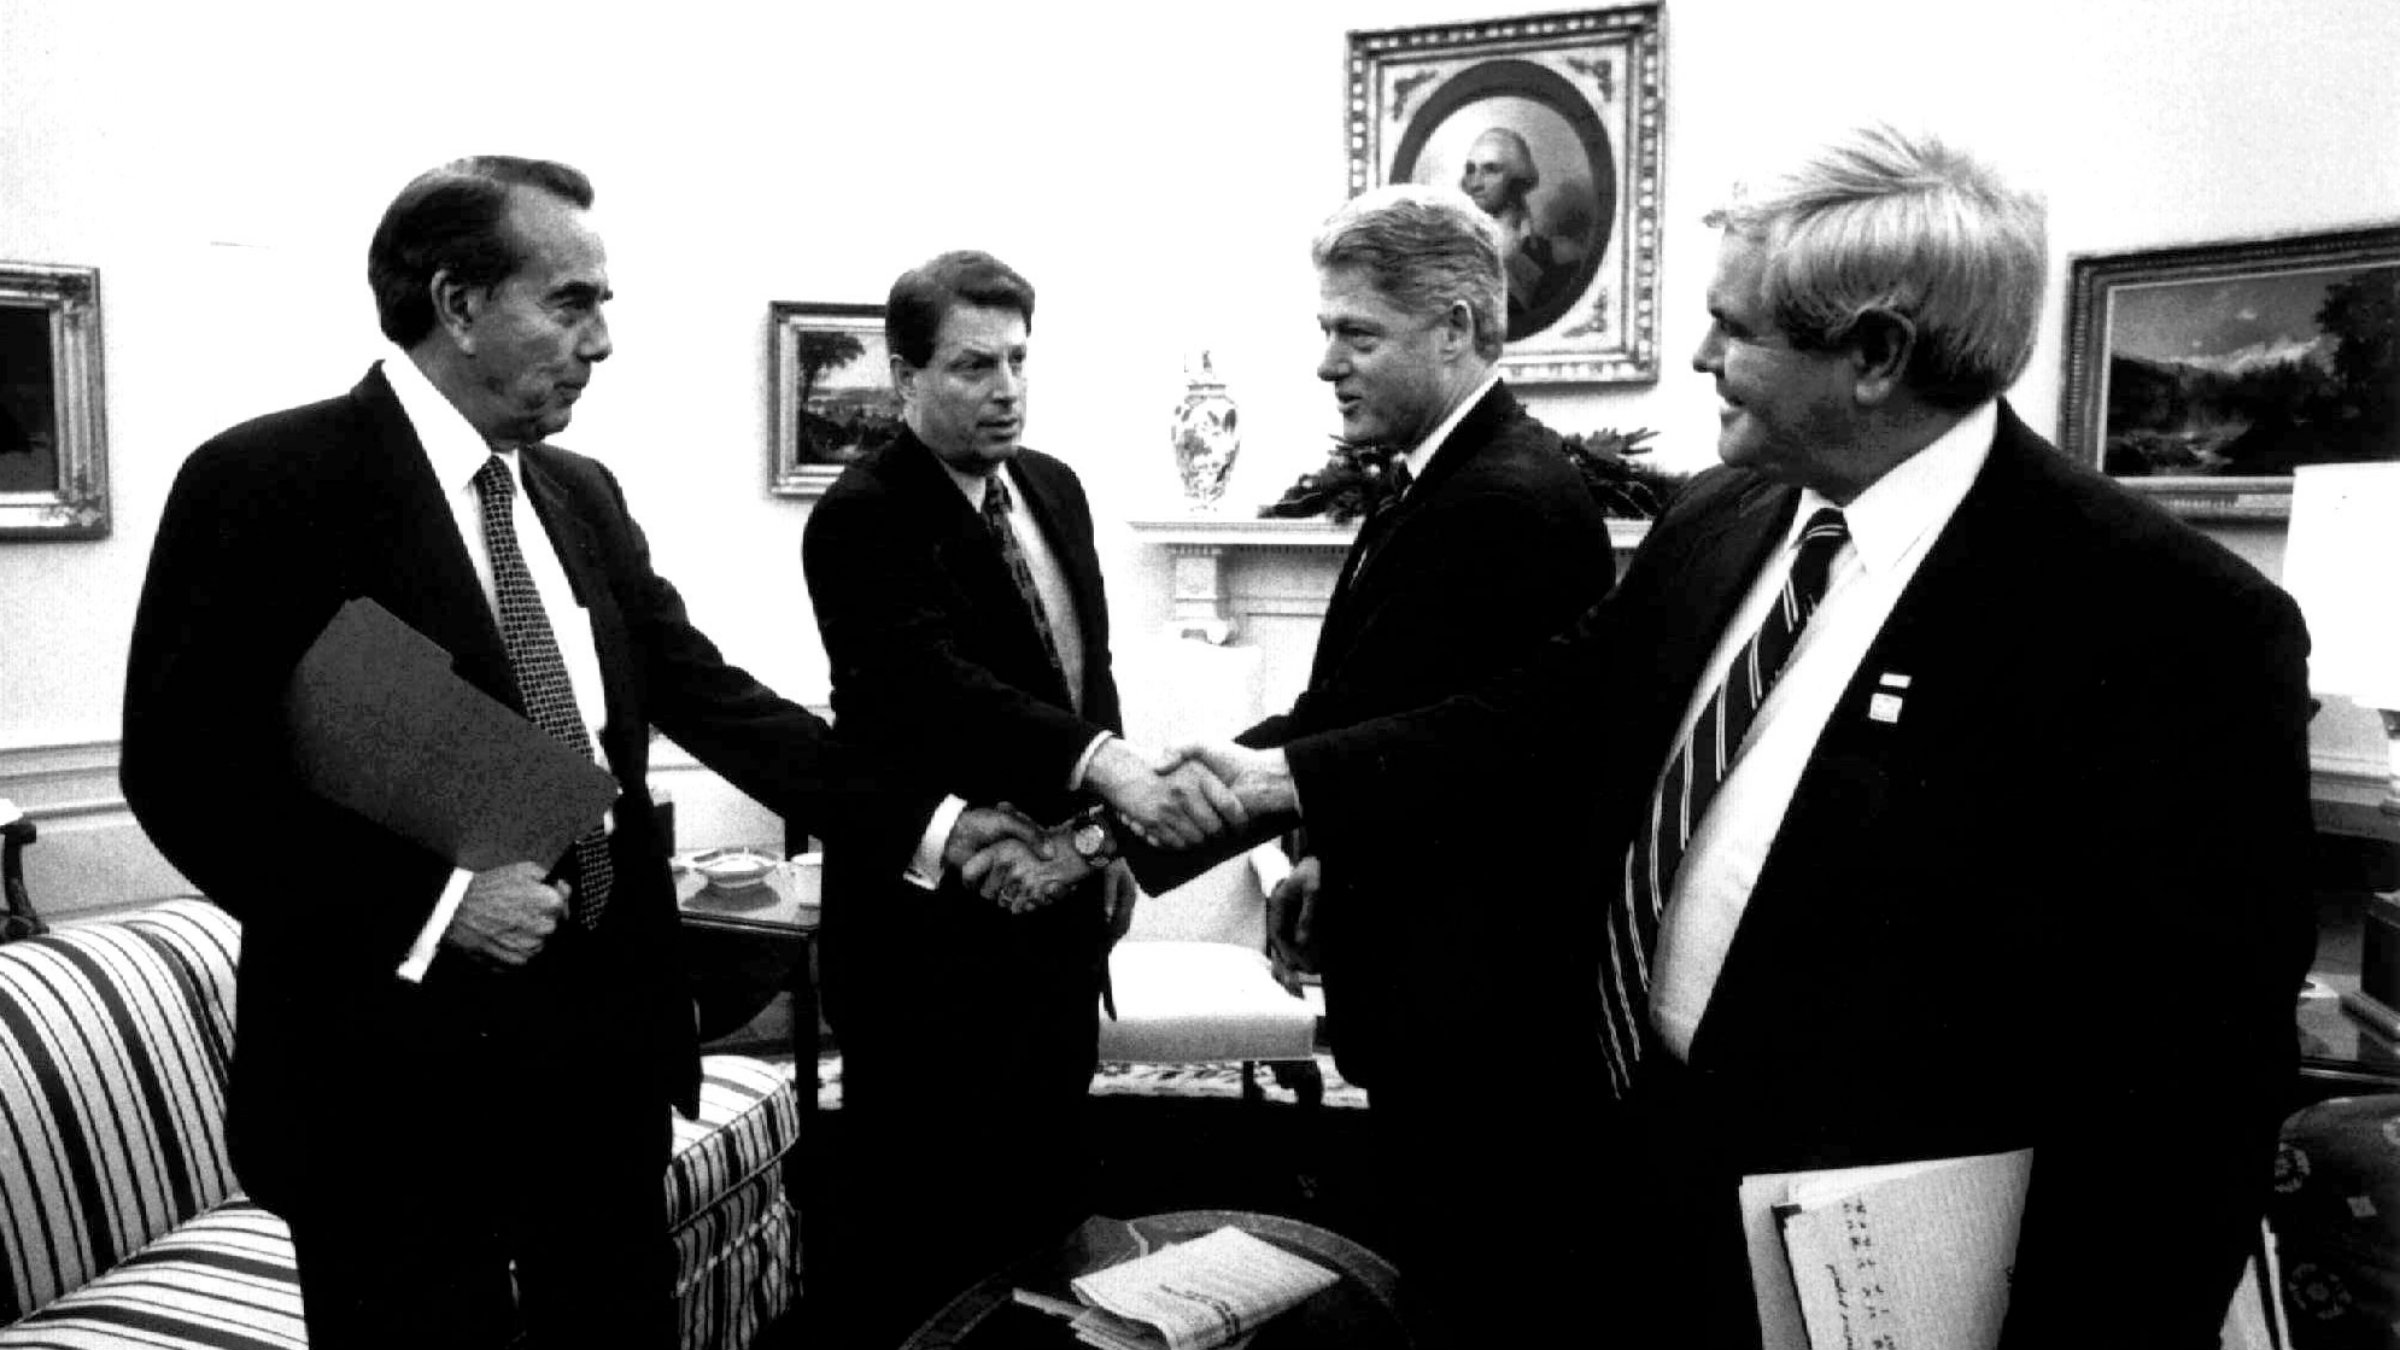 Republican Senate leader Bob Dole, Democratic Vice President Al Gore, Democratic President Bill Clinton and Republican Speaker of the House Newt Gingrich perform a complicated fiscal handshake. Those were the days...